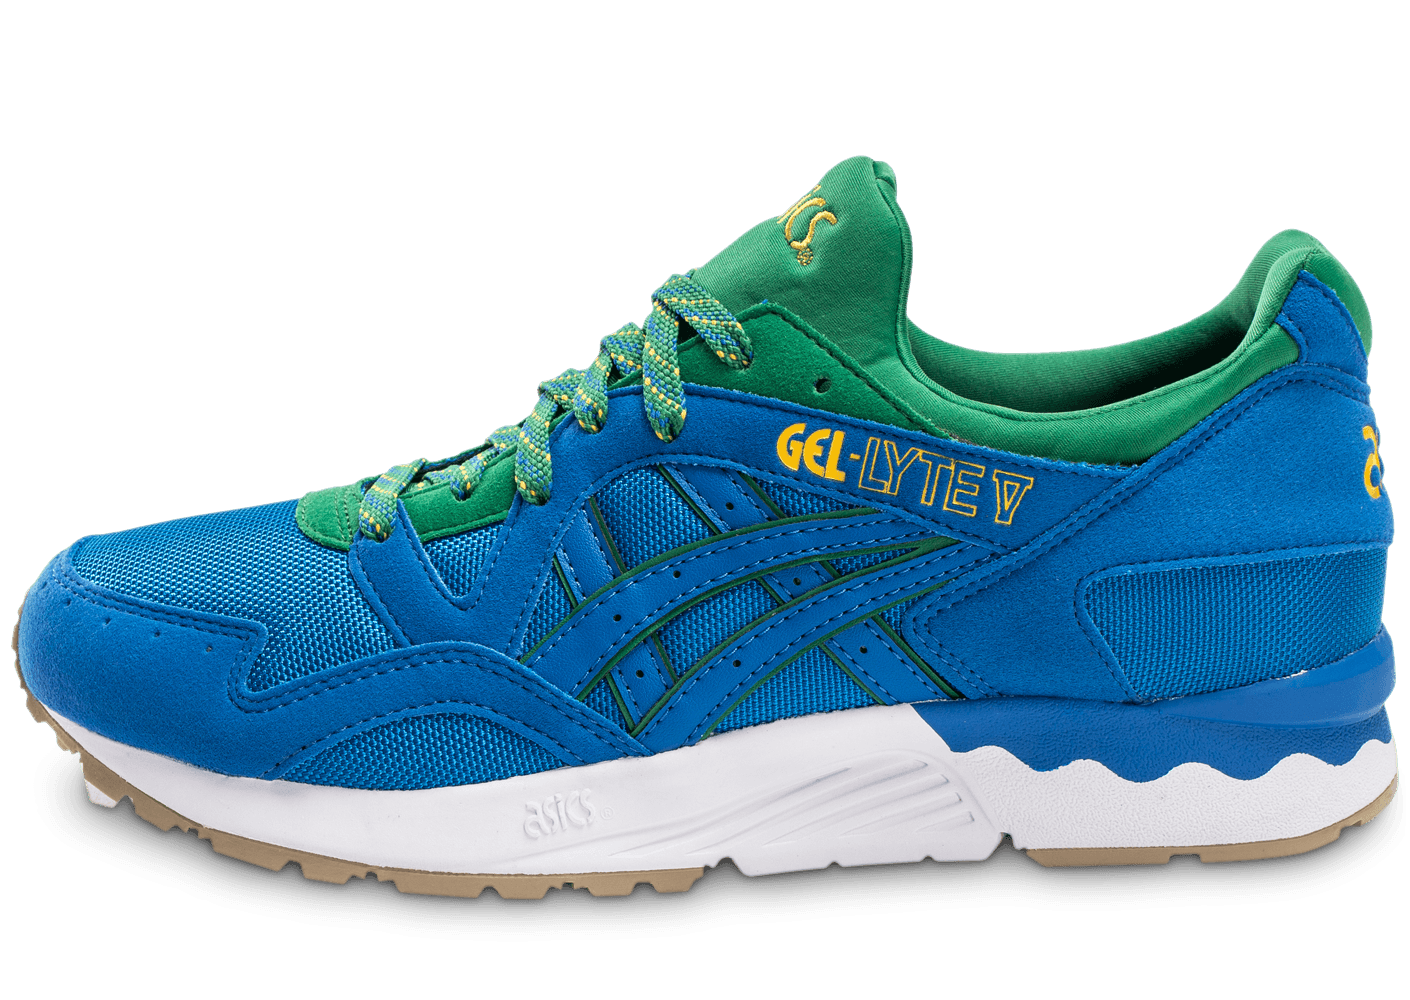 asics gel lyte v rio pack bleue chaussures homme chausport. Black Bedroom Furniture Sets. Home Design Ideas